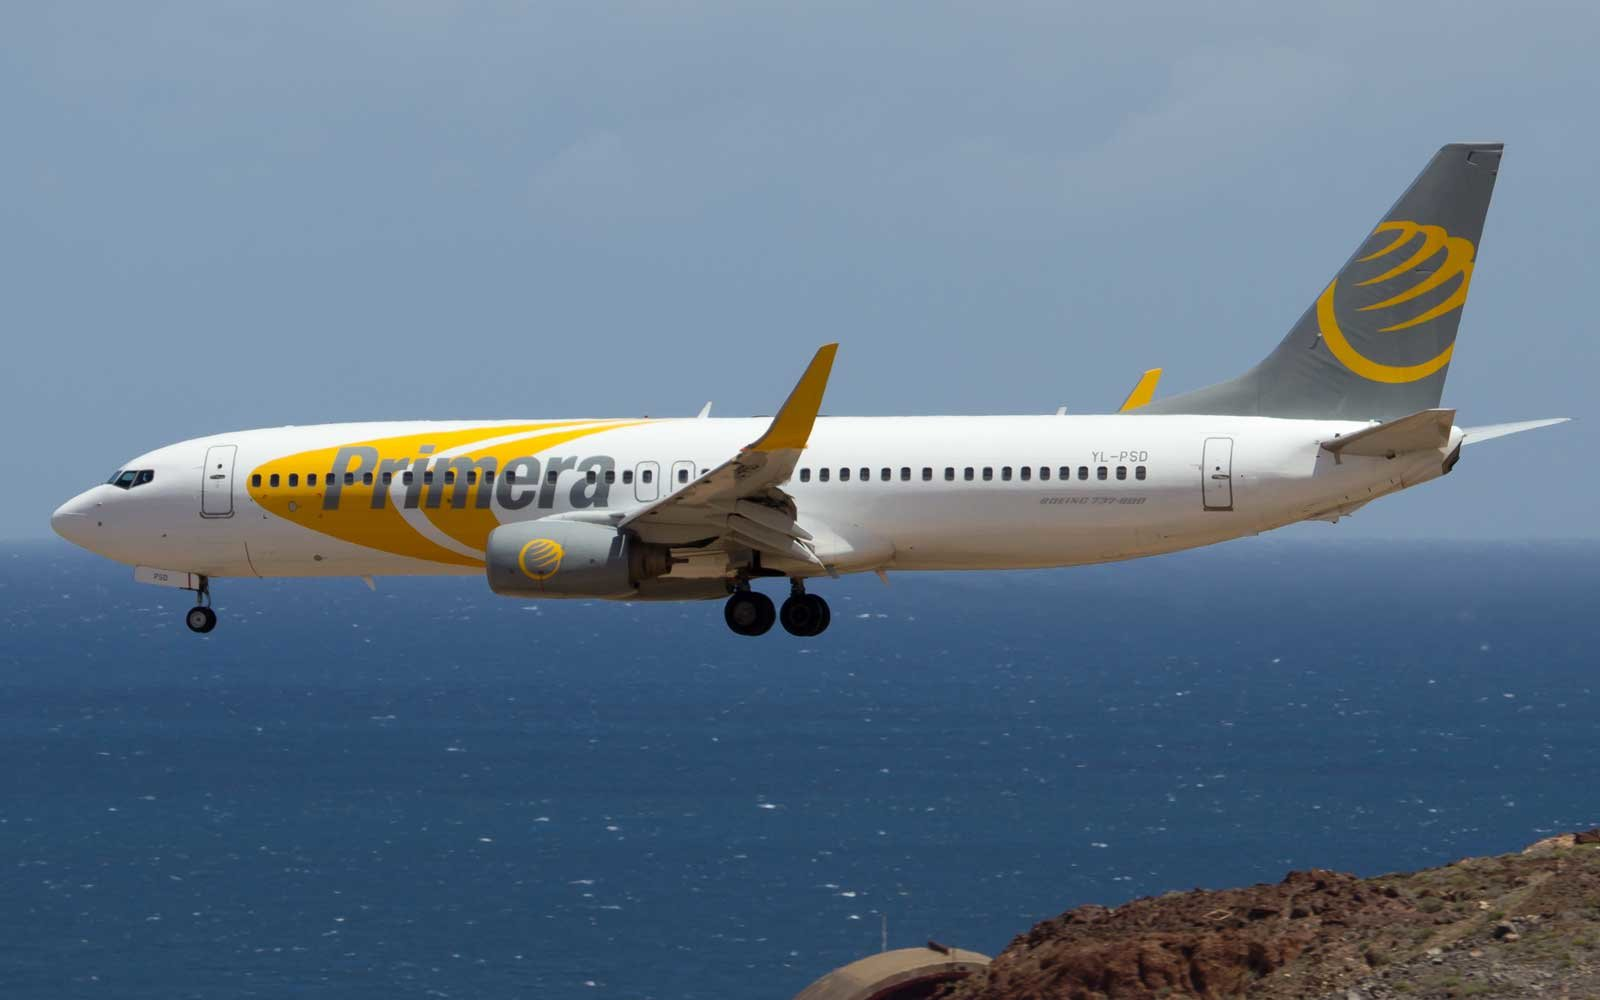 Primera Air goes bust: All you need to know